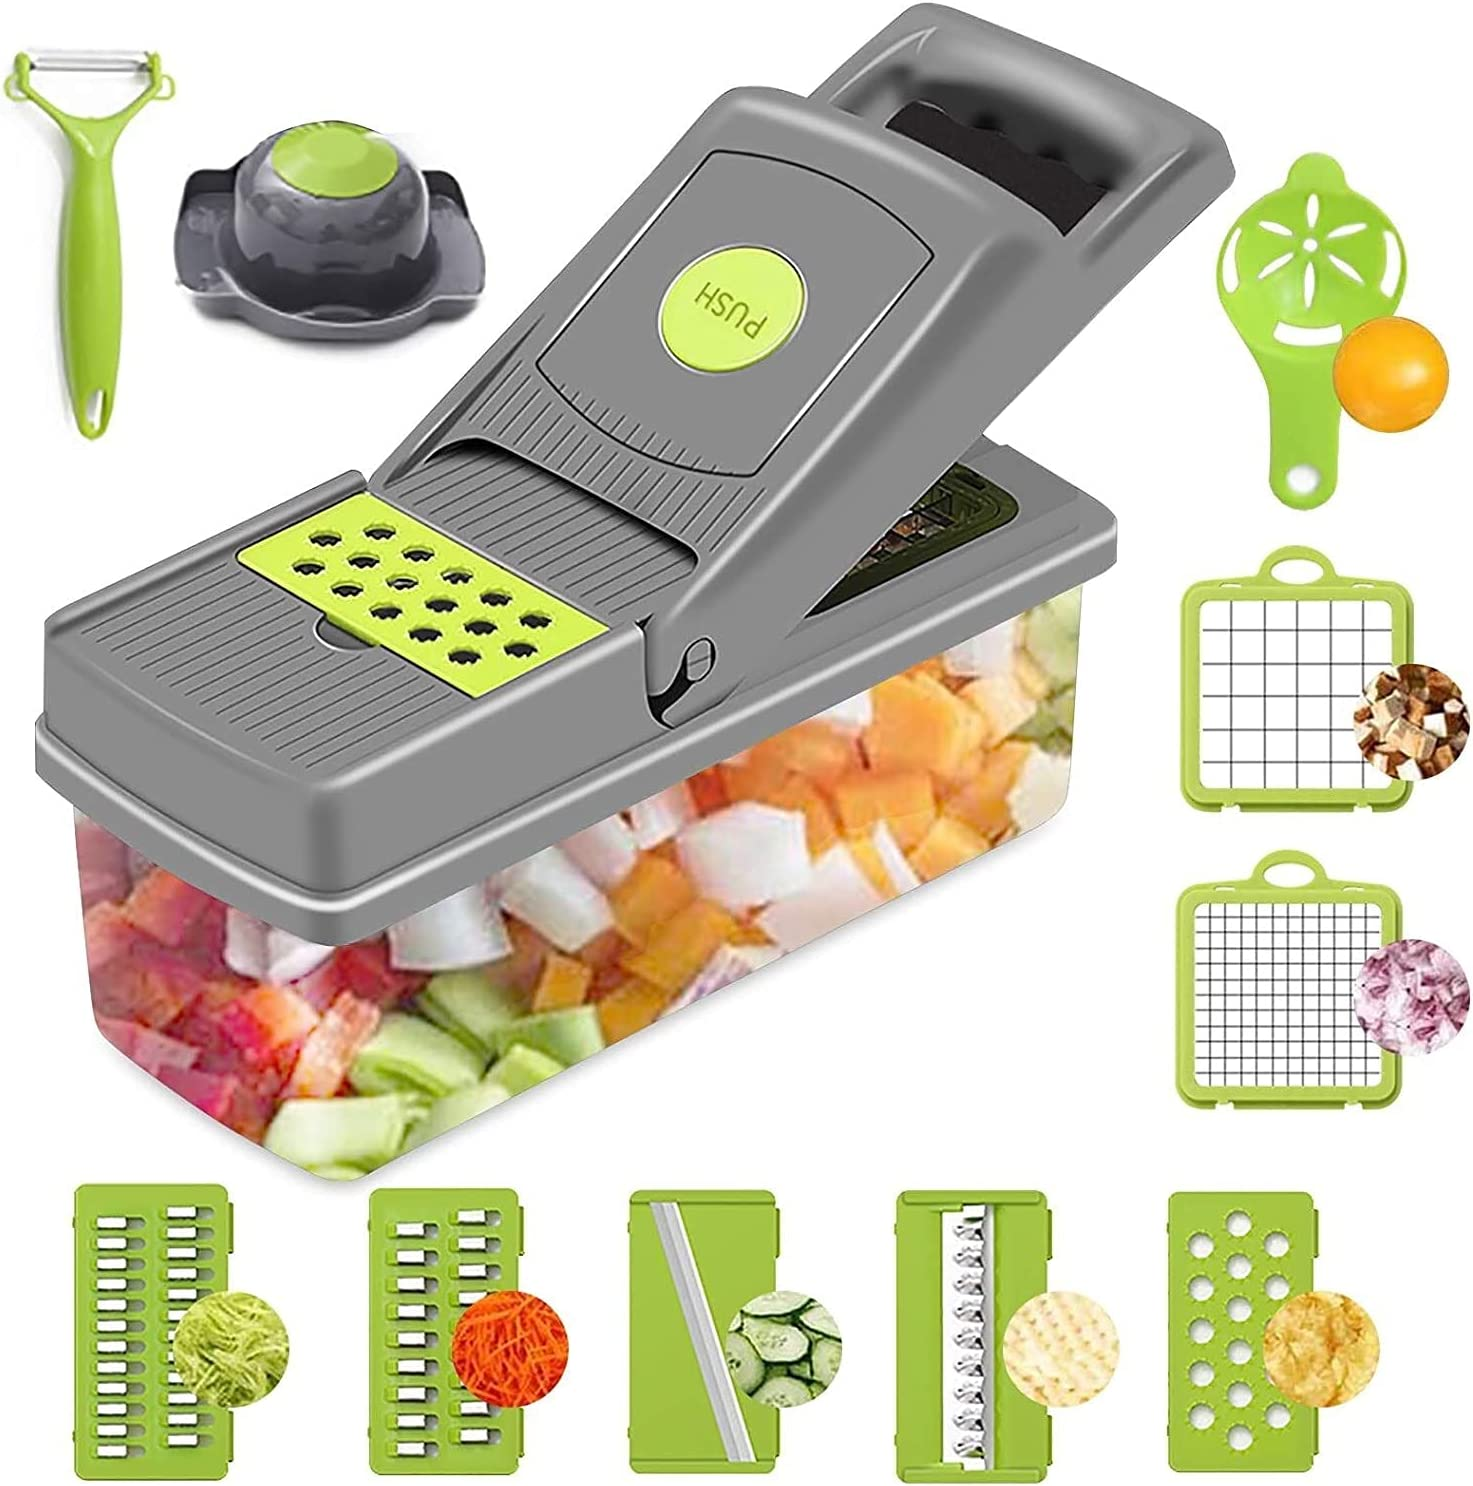 AmtBety 15 in 1 Vegetable Chopper Onion Chopper Dicer,10 Blade Vegetable Cutter Spiralizer Slicer Egg Potato Salad Fruit Apple Carrot Choppers Separator Mandoline with Container and glove